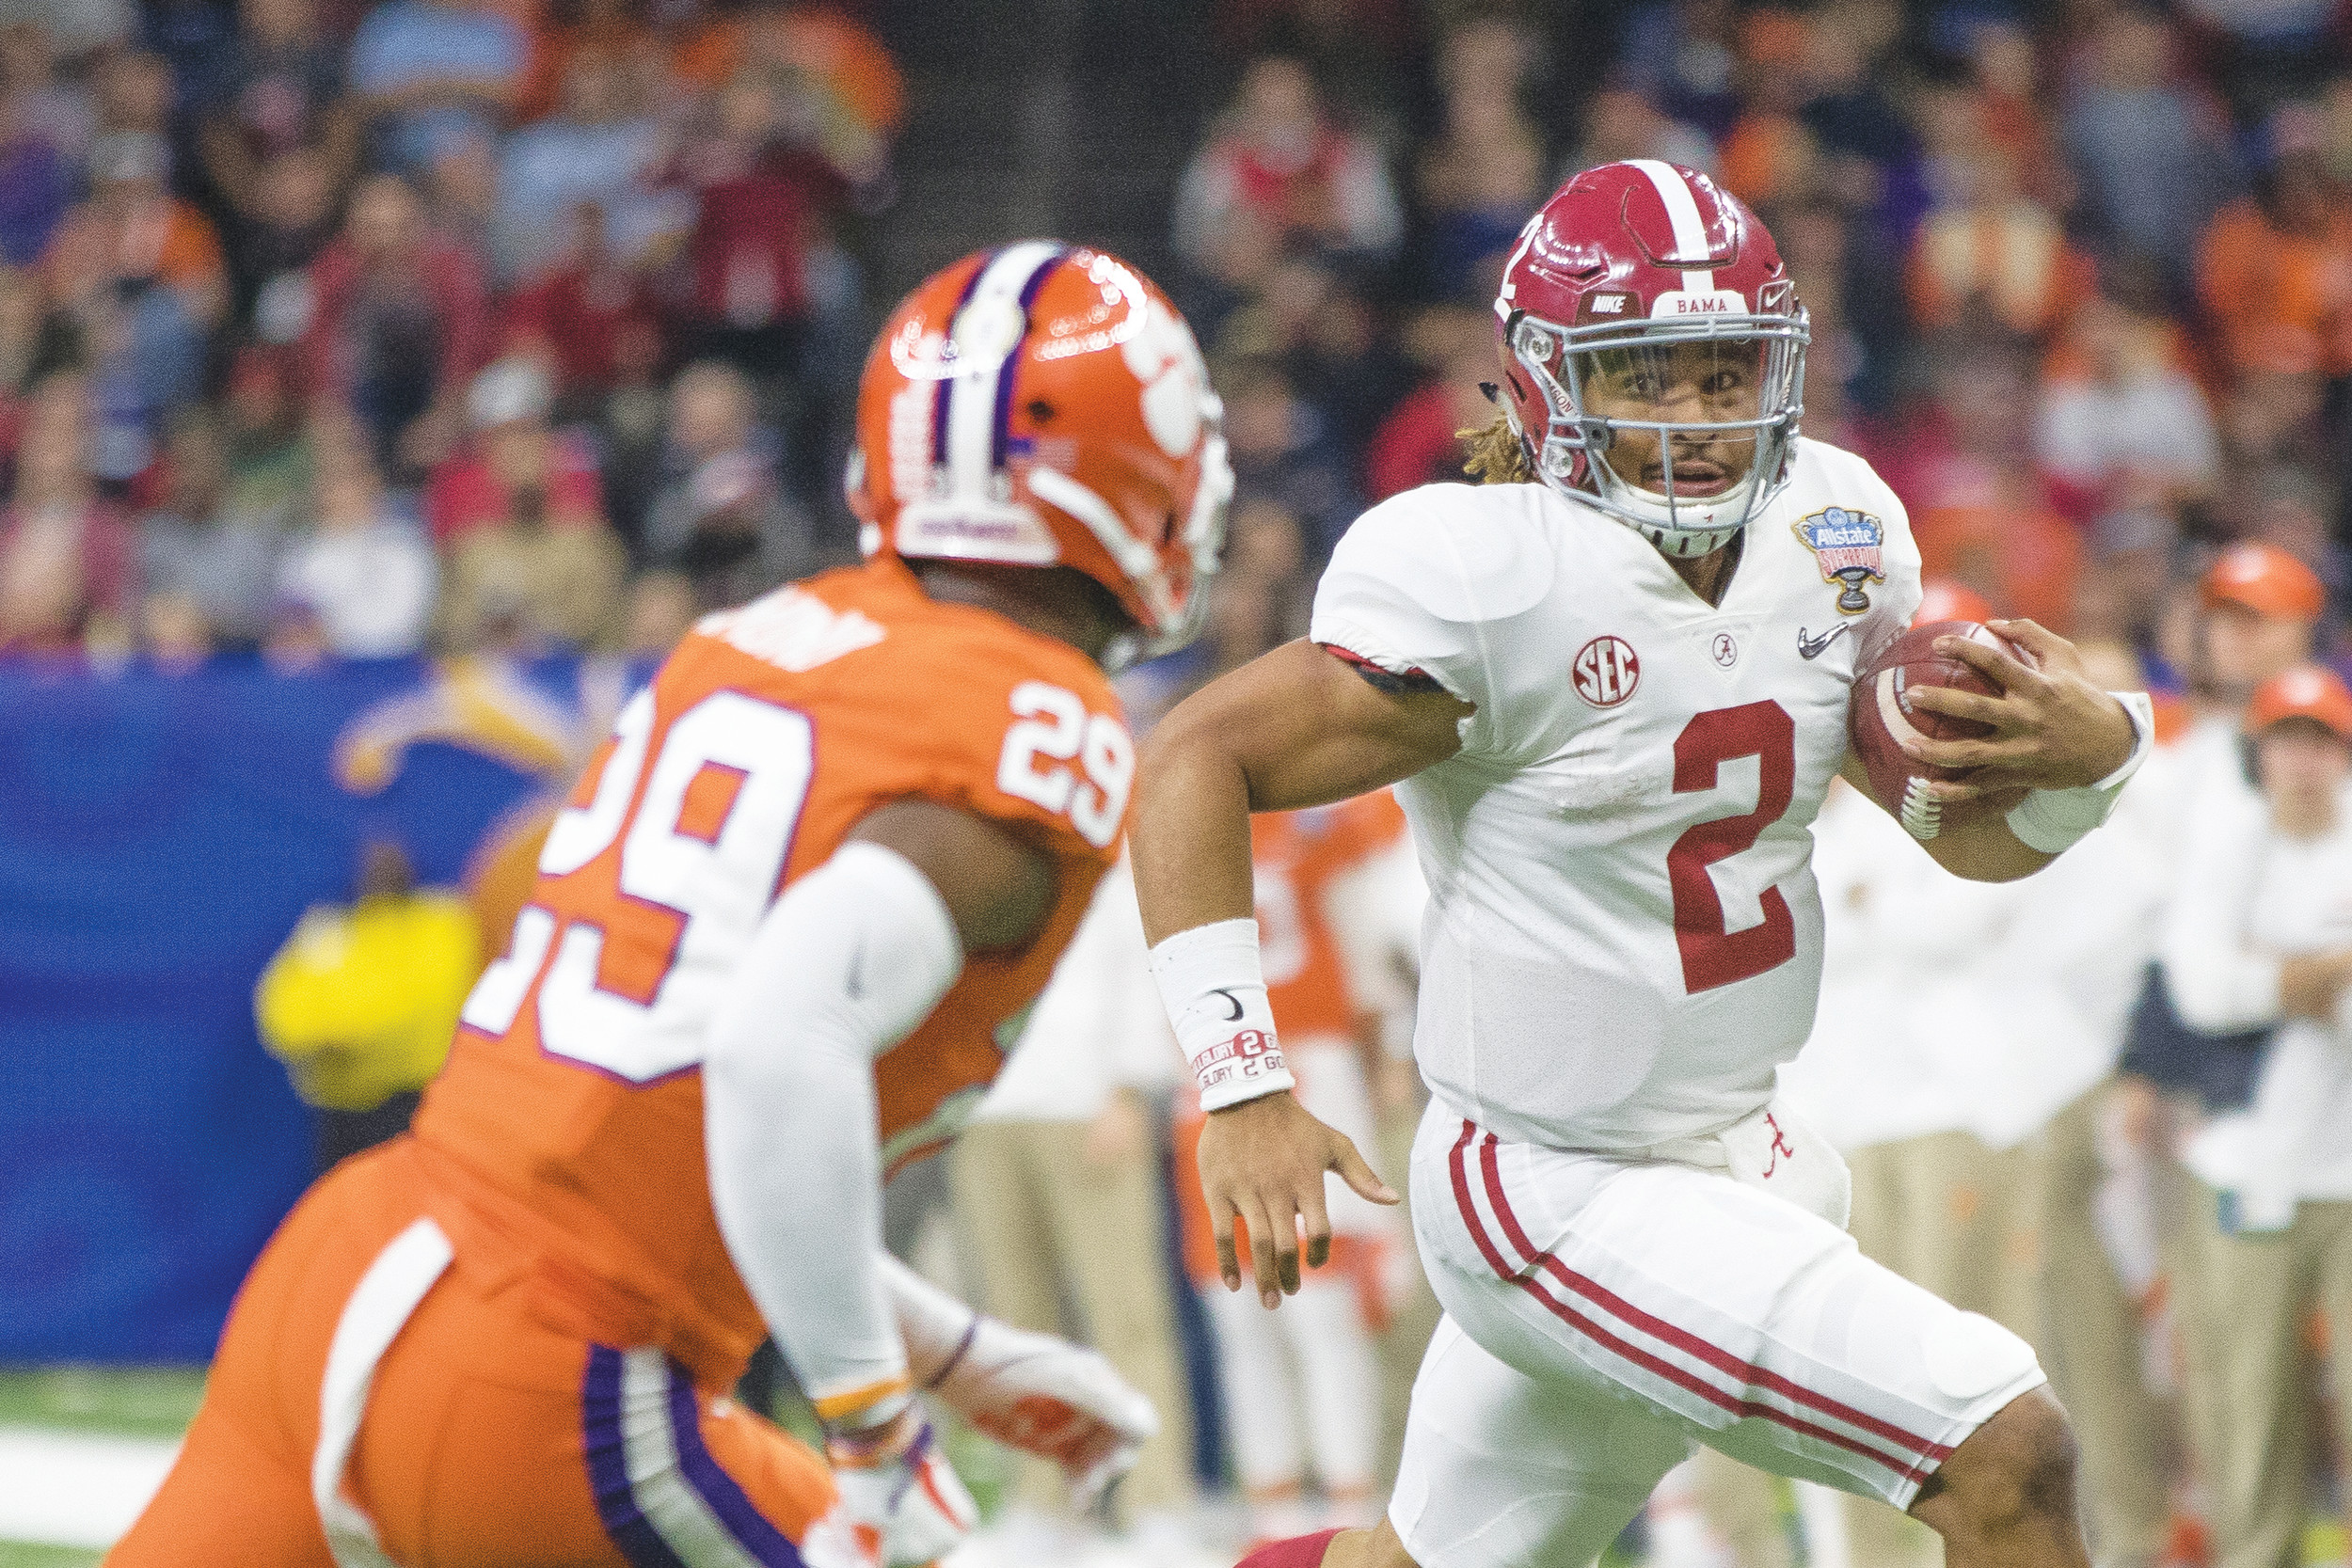 Alabama quarterback Jalen Hurts (2) looks for running room against Clemson quarterback Marcus Edmond in the Crimson Tide's 24-6 victory in the Sugar Bowl on Monday in New Orleans. Alabama will play for Georgia for the national title in Atlanta next week.